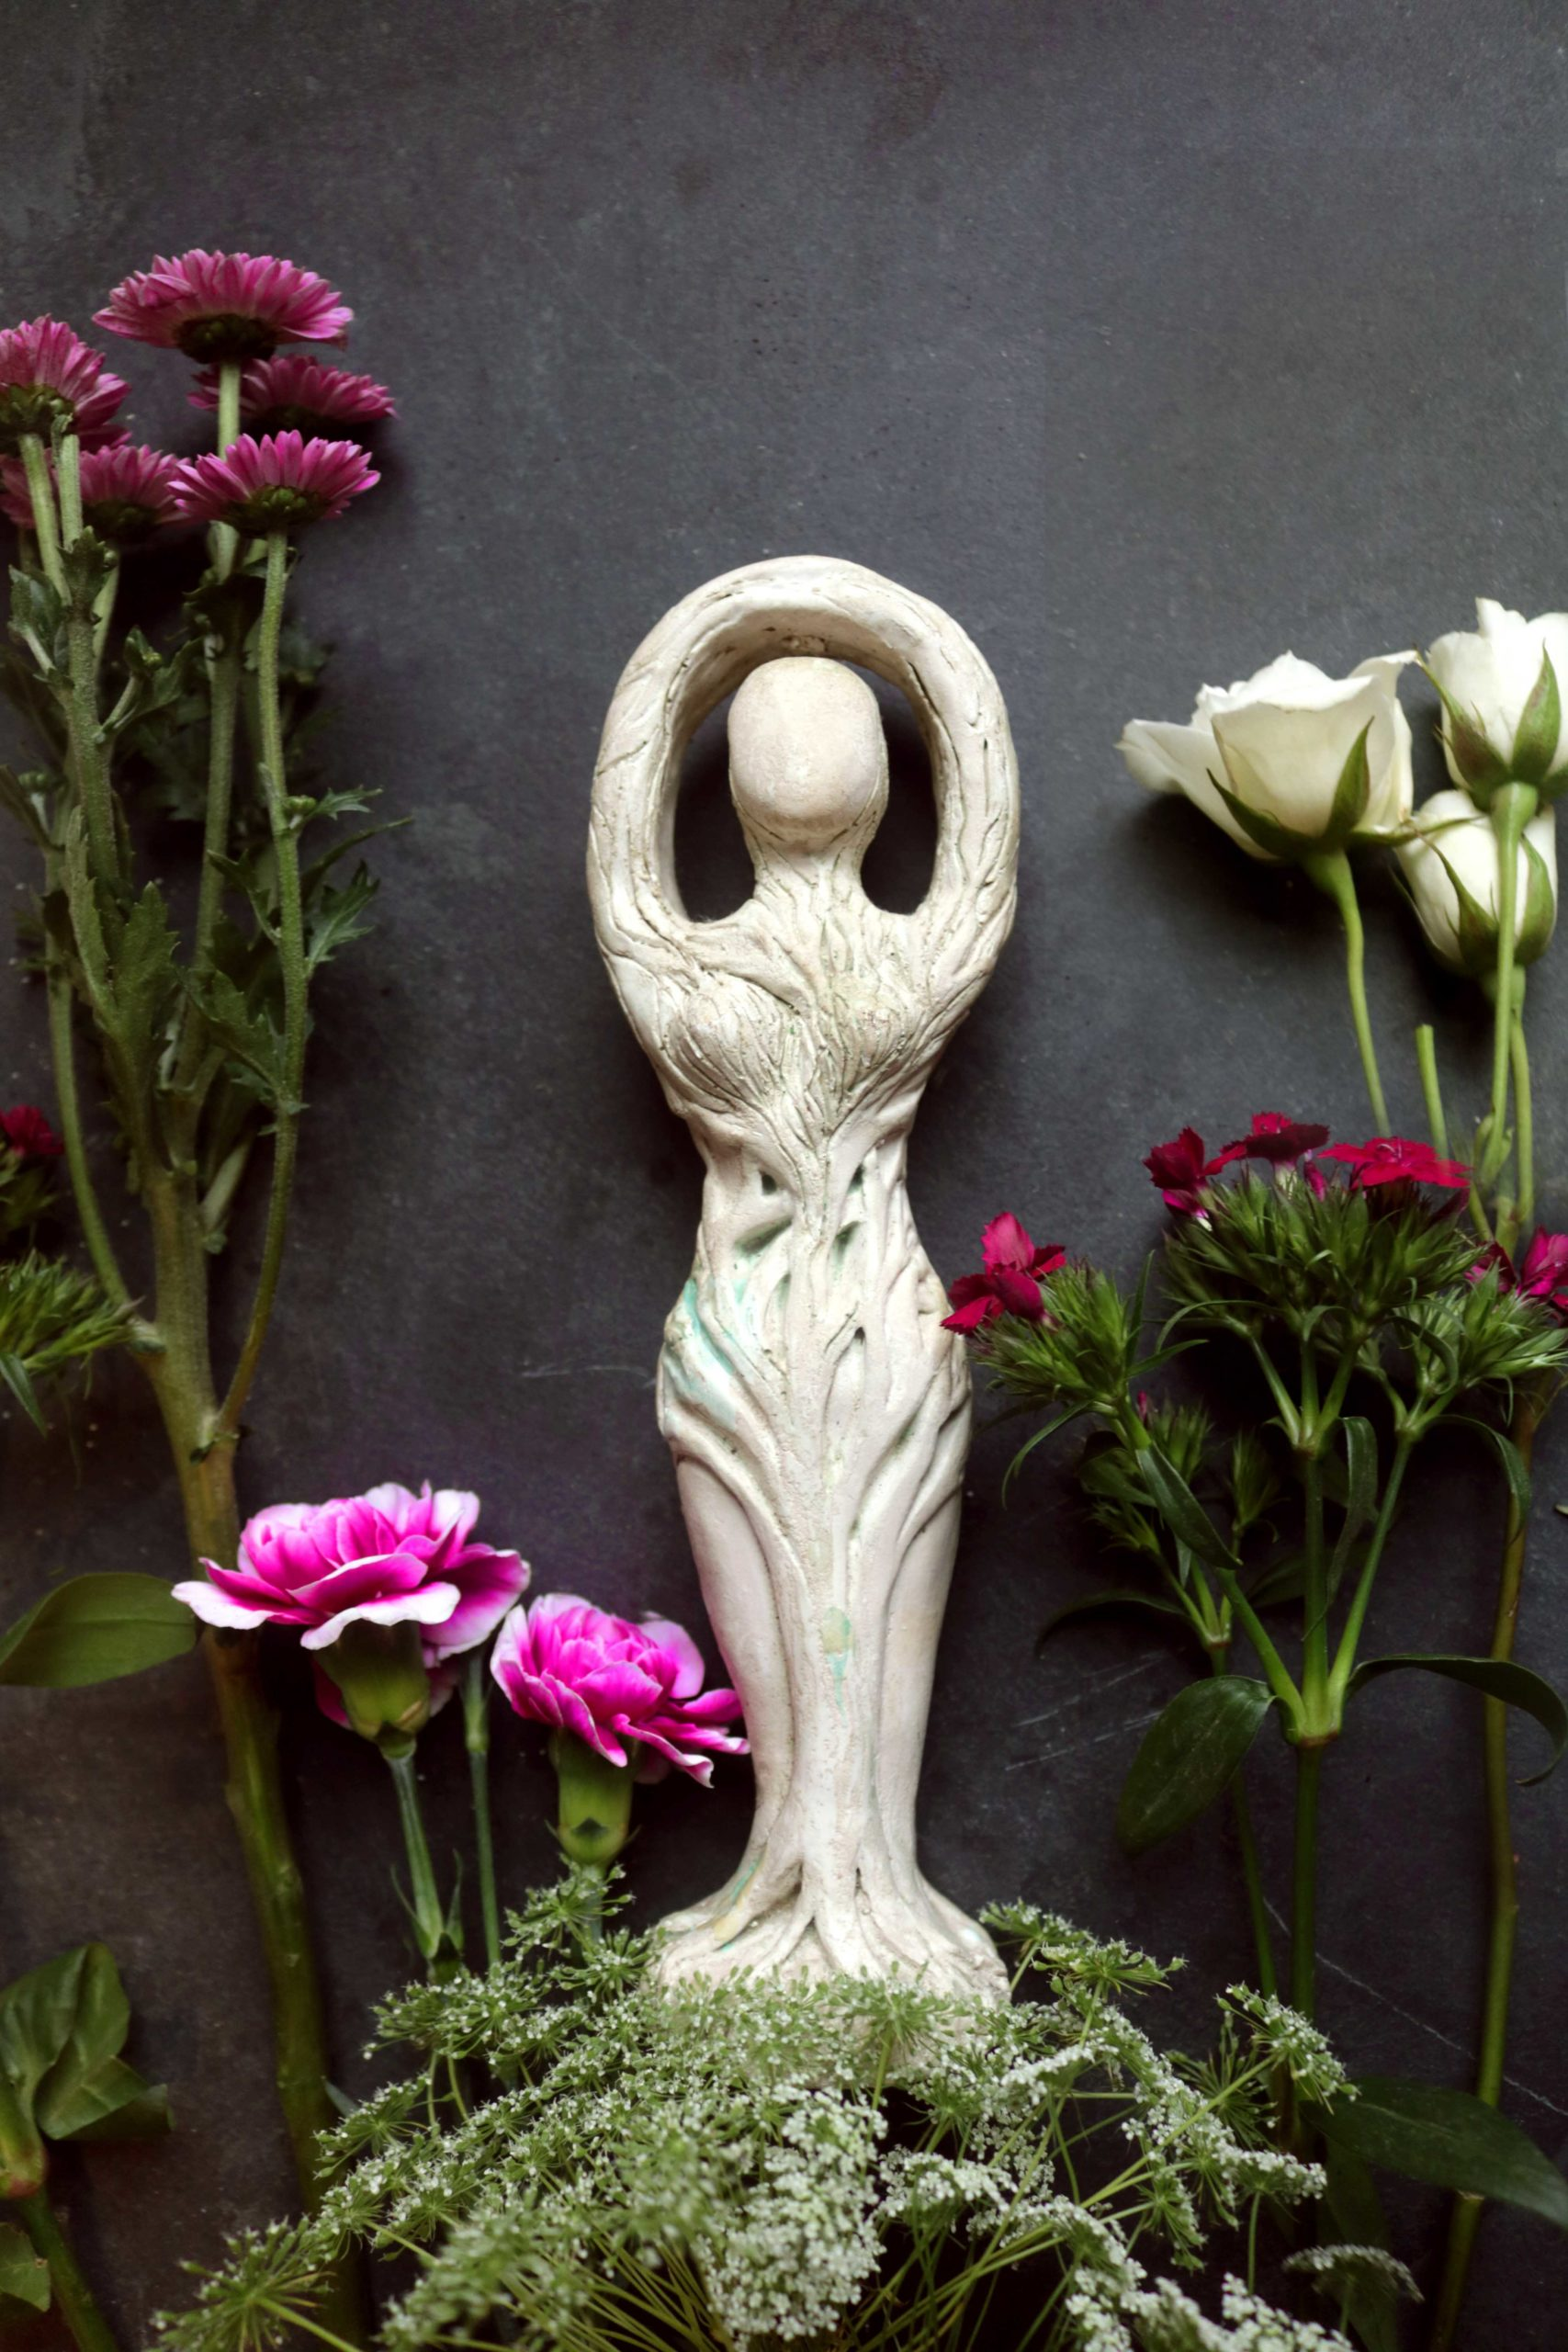 Anoint garden statues with spell oil, and other clever gardening ideas from a green witch.